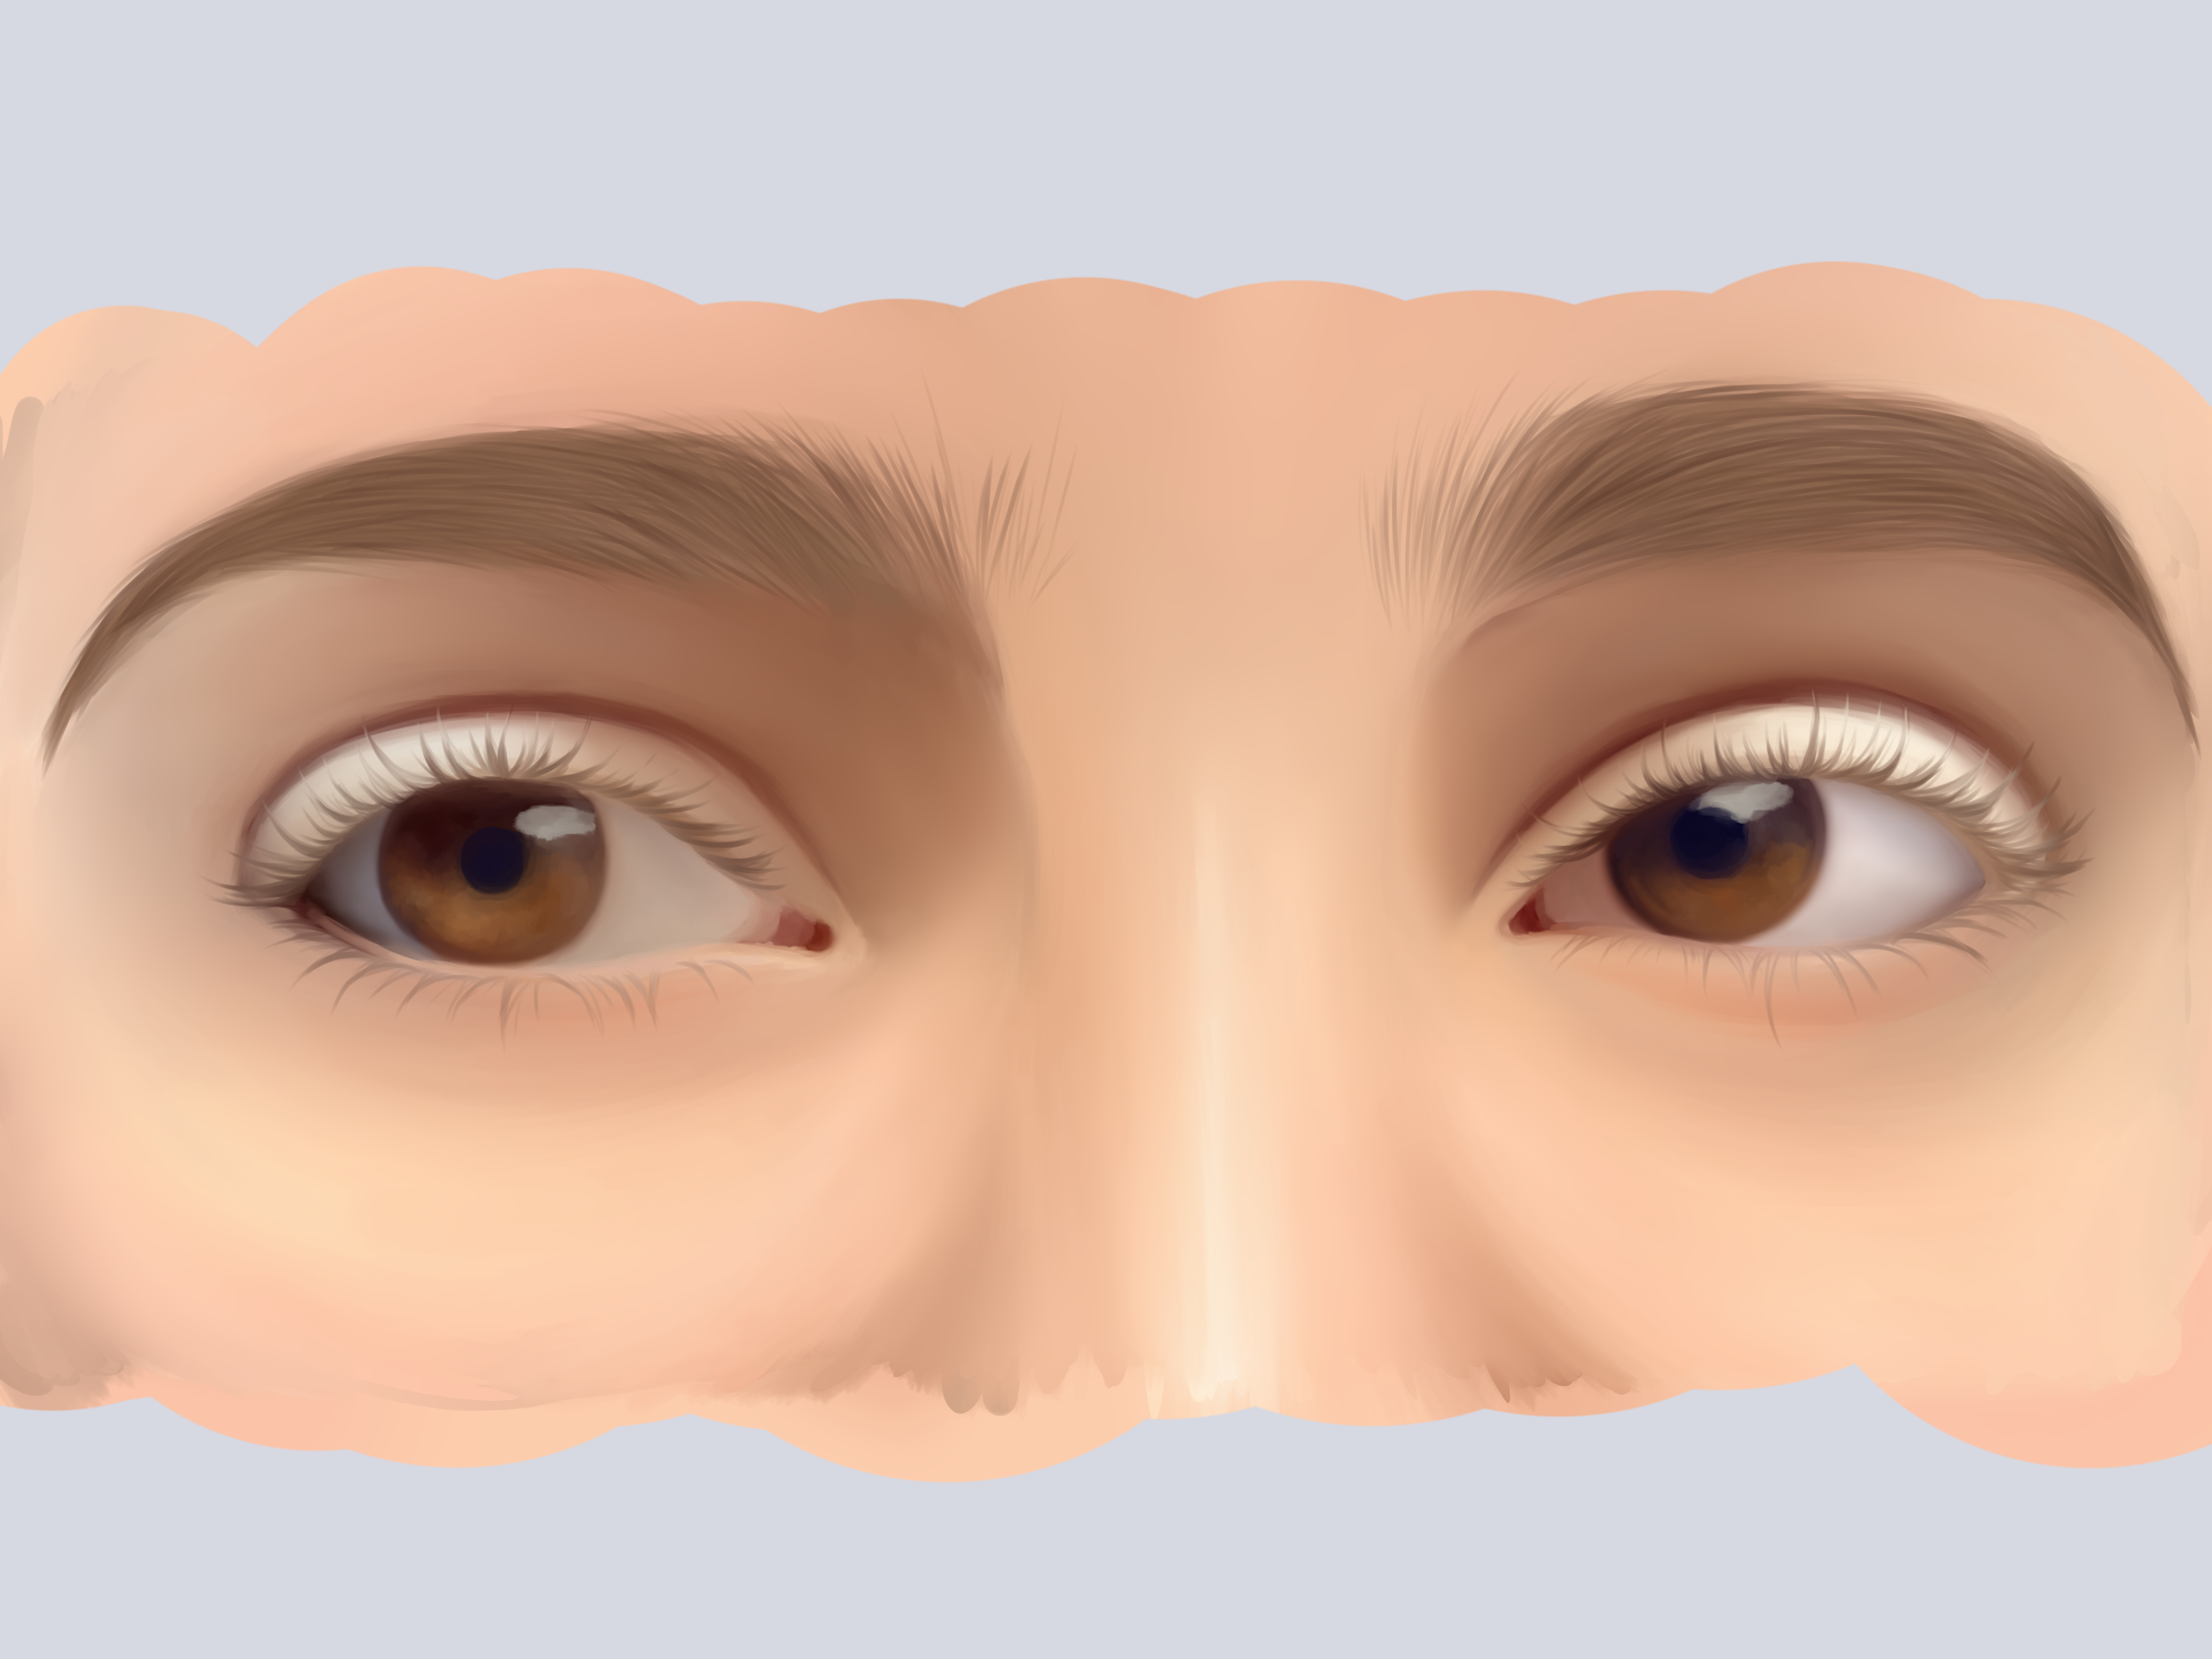 Drawing Realistic and Anime Style Eyes by Ecao - CLIP STUDIO TIPS